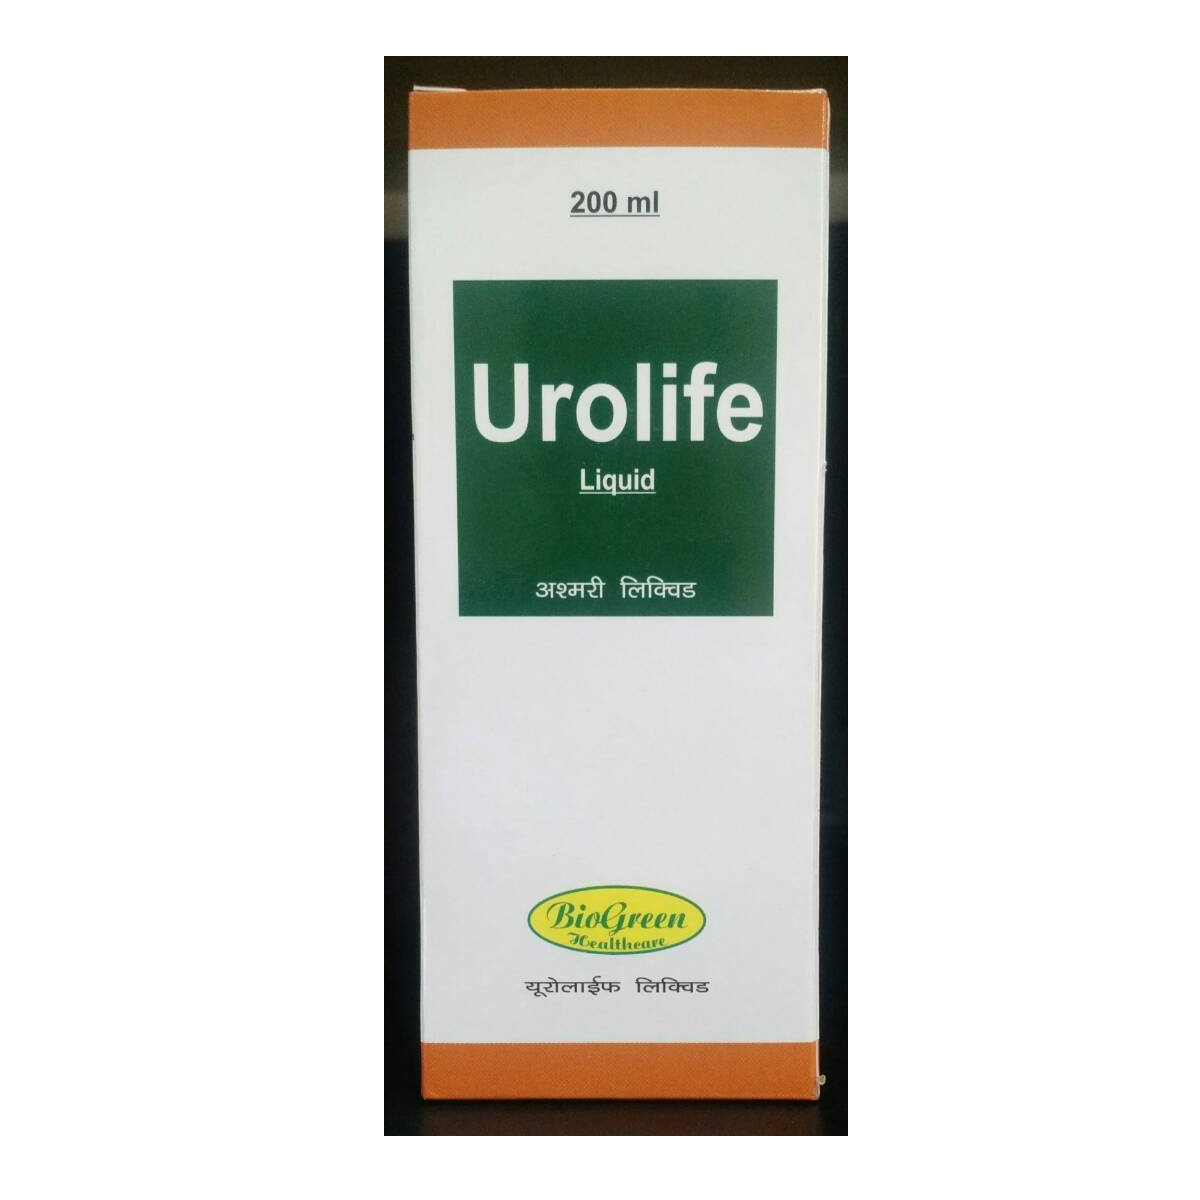 Urolife Liquid In Raigarh